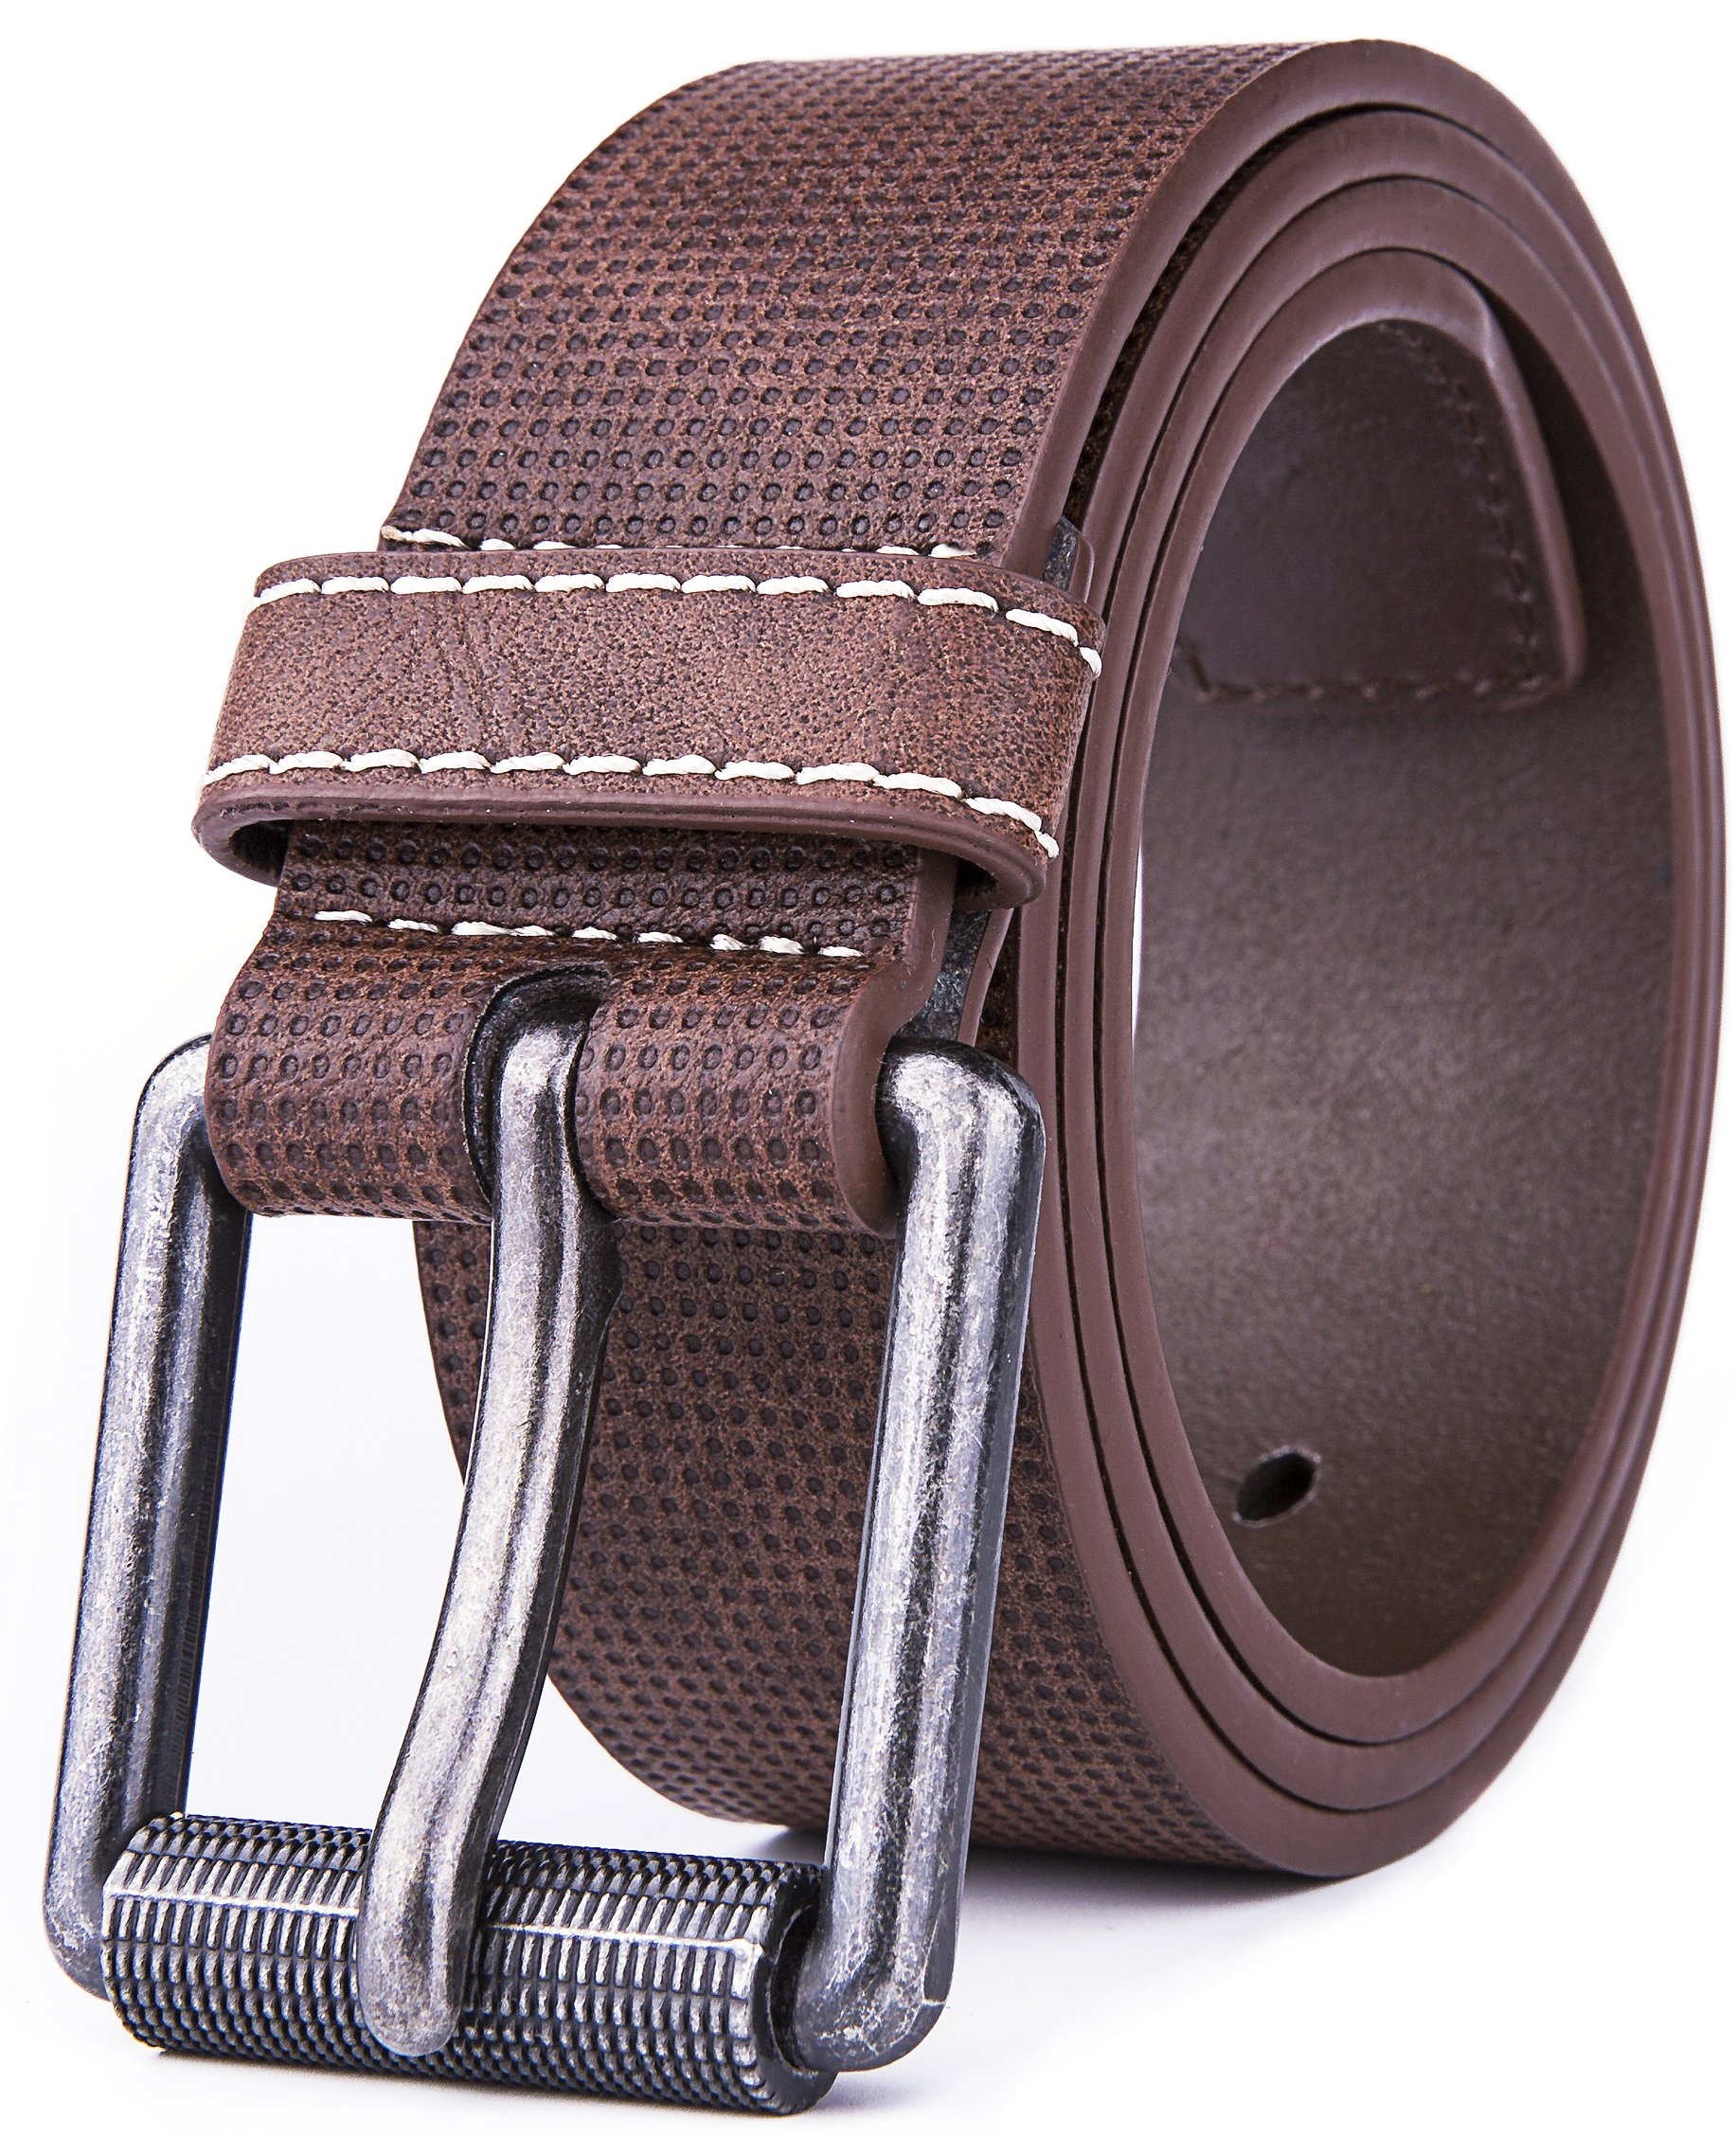 Belt for men, Fashion and Classic Leather belt for Jeans and Work Business - Big Sale New Belts (32, 1 D Brown)